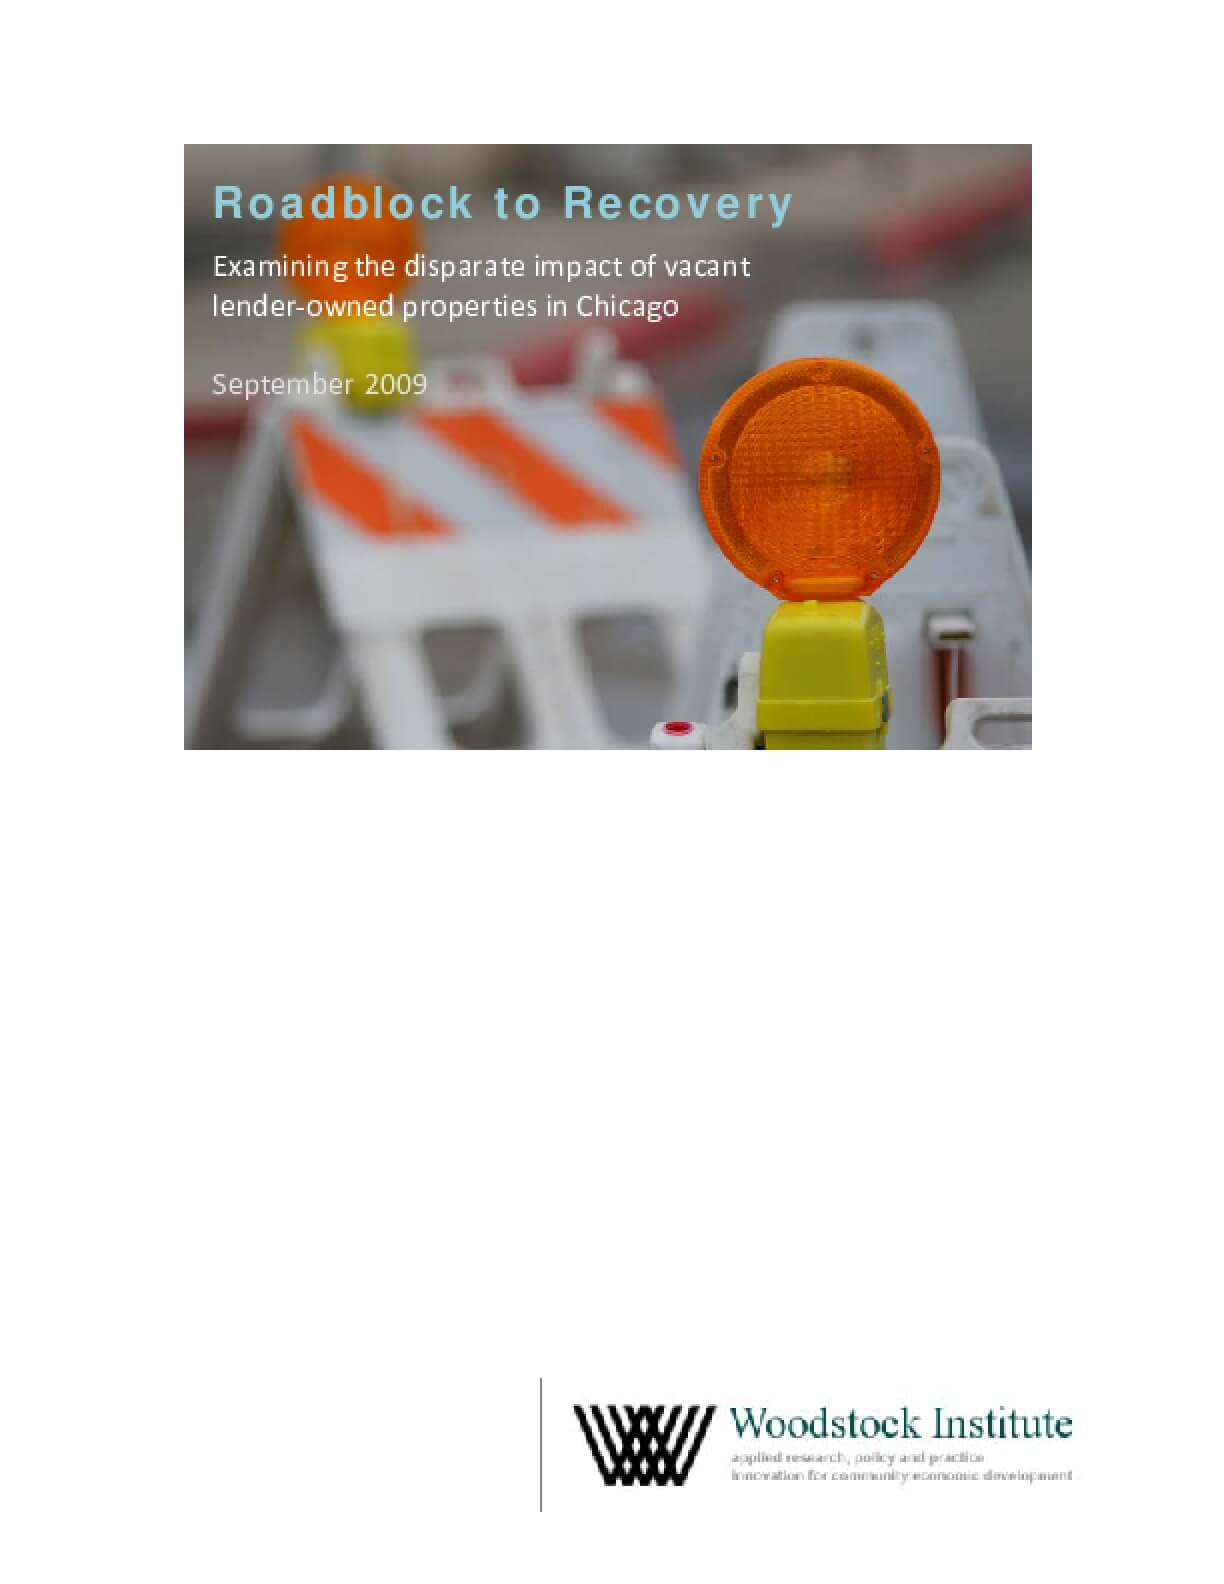 Roadblock to Recovery: Examining the Disparate Impact of Vacant Lender-Owned Properties in Chicago